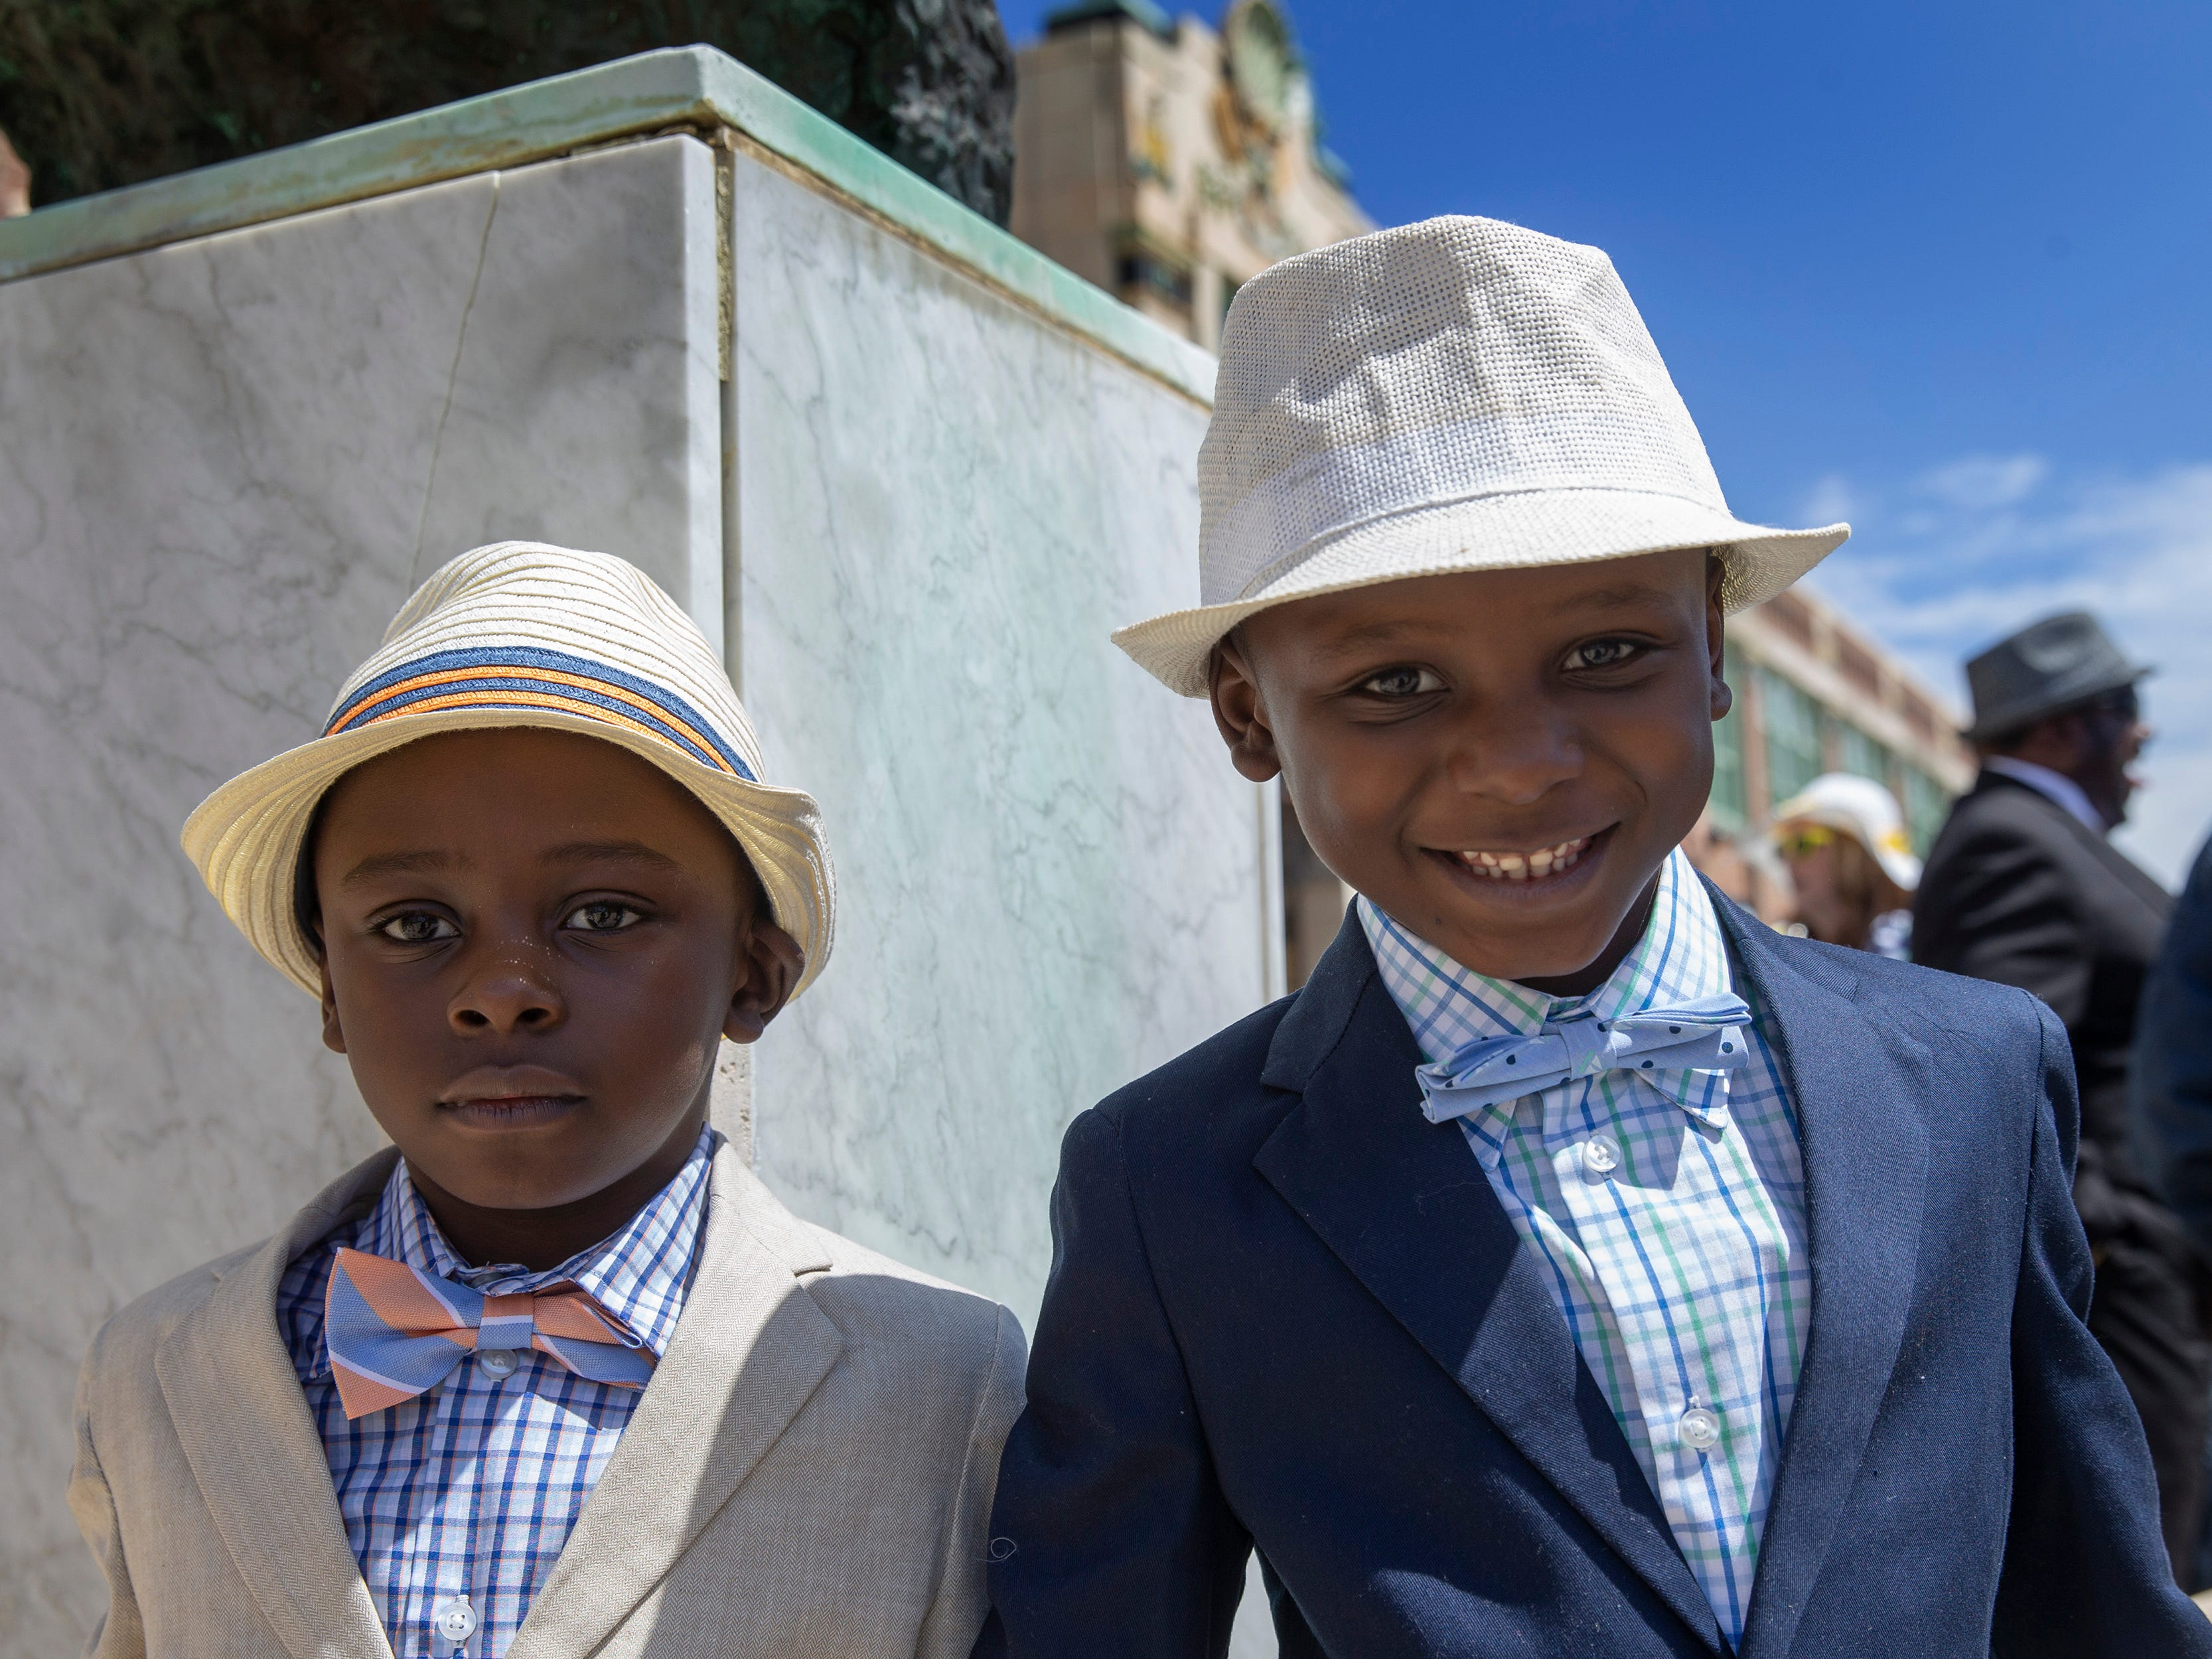 Twins Elijah and Izaiah Hocutt show off their clothes as they wait for the start of the Asbury Park Easter Parade on the boardwalk outside the Paramount Theatre in Asbury Park on April 21, 2019.